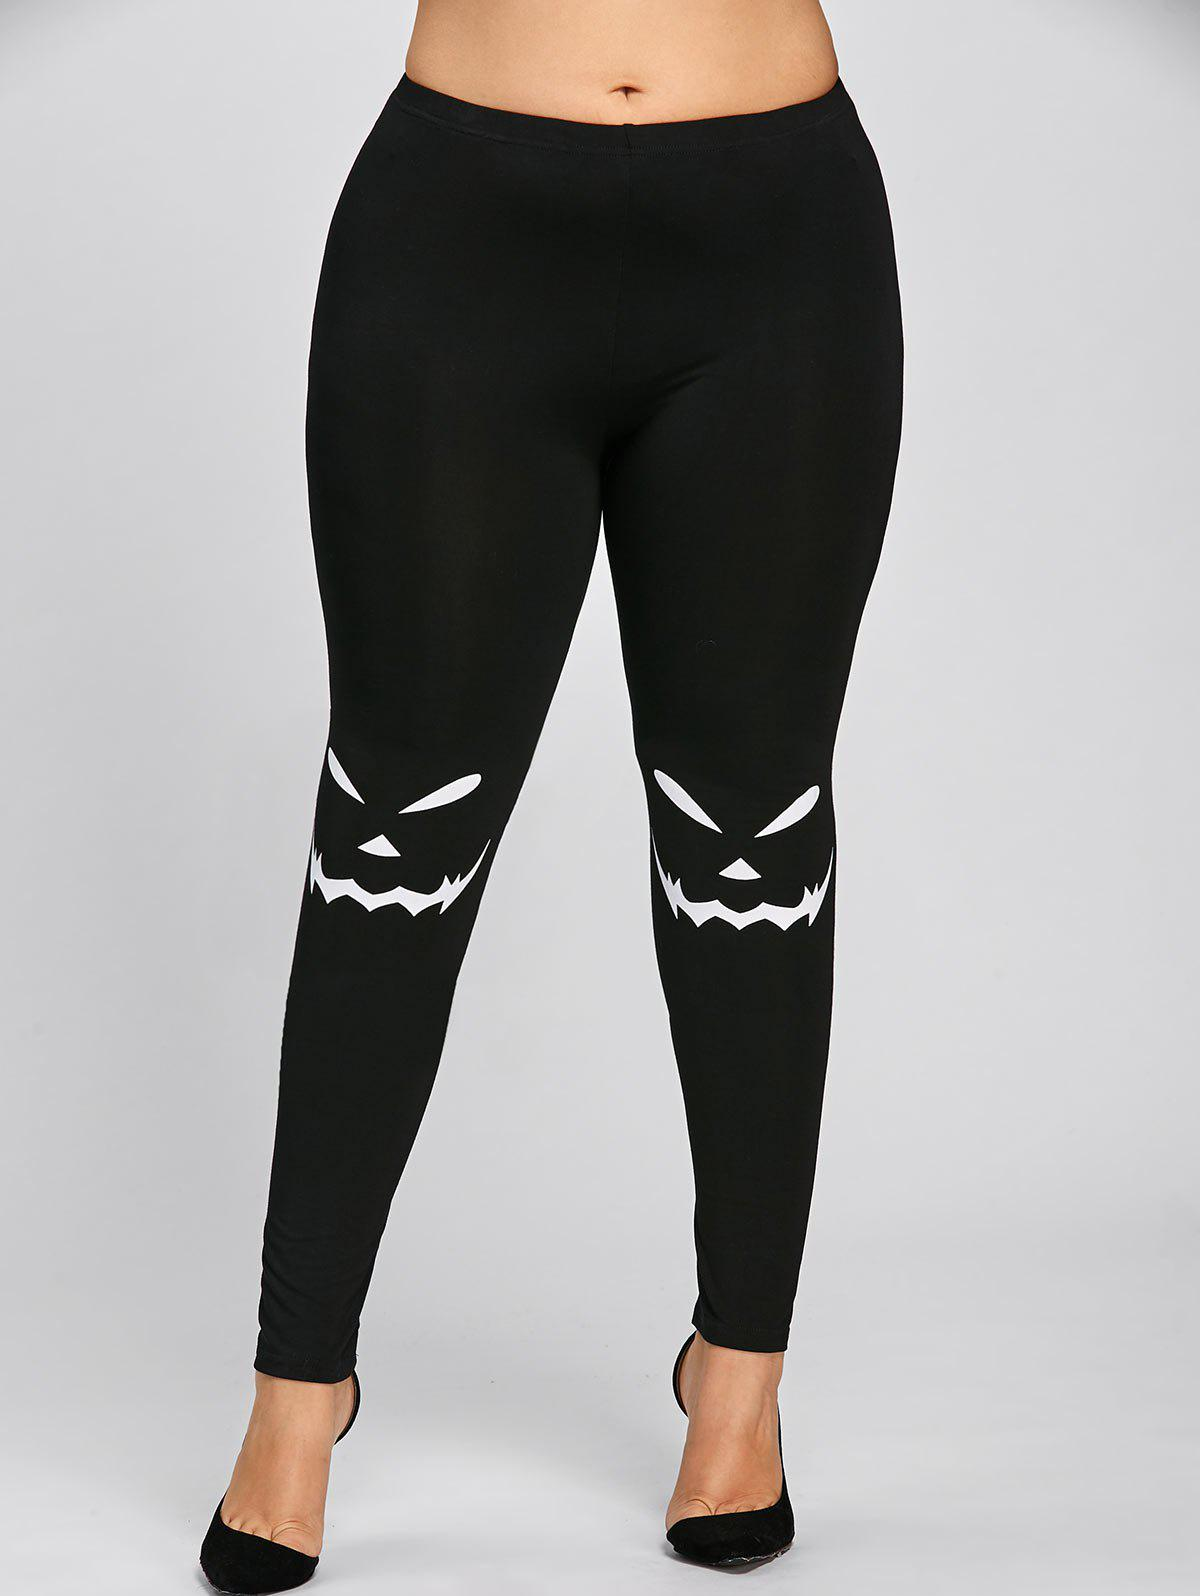 Halloween Plus Size Graphic LeggingsWOMEN<br><br>Size: 3XL; Color: BLACK; Style: Casual; Length: Normal; Material: Polyester,Spandex; Fit Type: Skinny; Waist Type: Mid; Closure Type: Elastic Waist; Pattern Type: Others; Pant Style: Pencil Pants; Weight: 0.2300kg; Package Contents: 1 x Leggings;